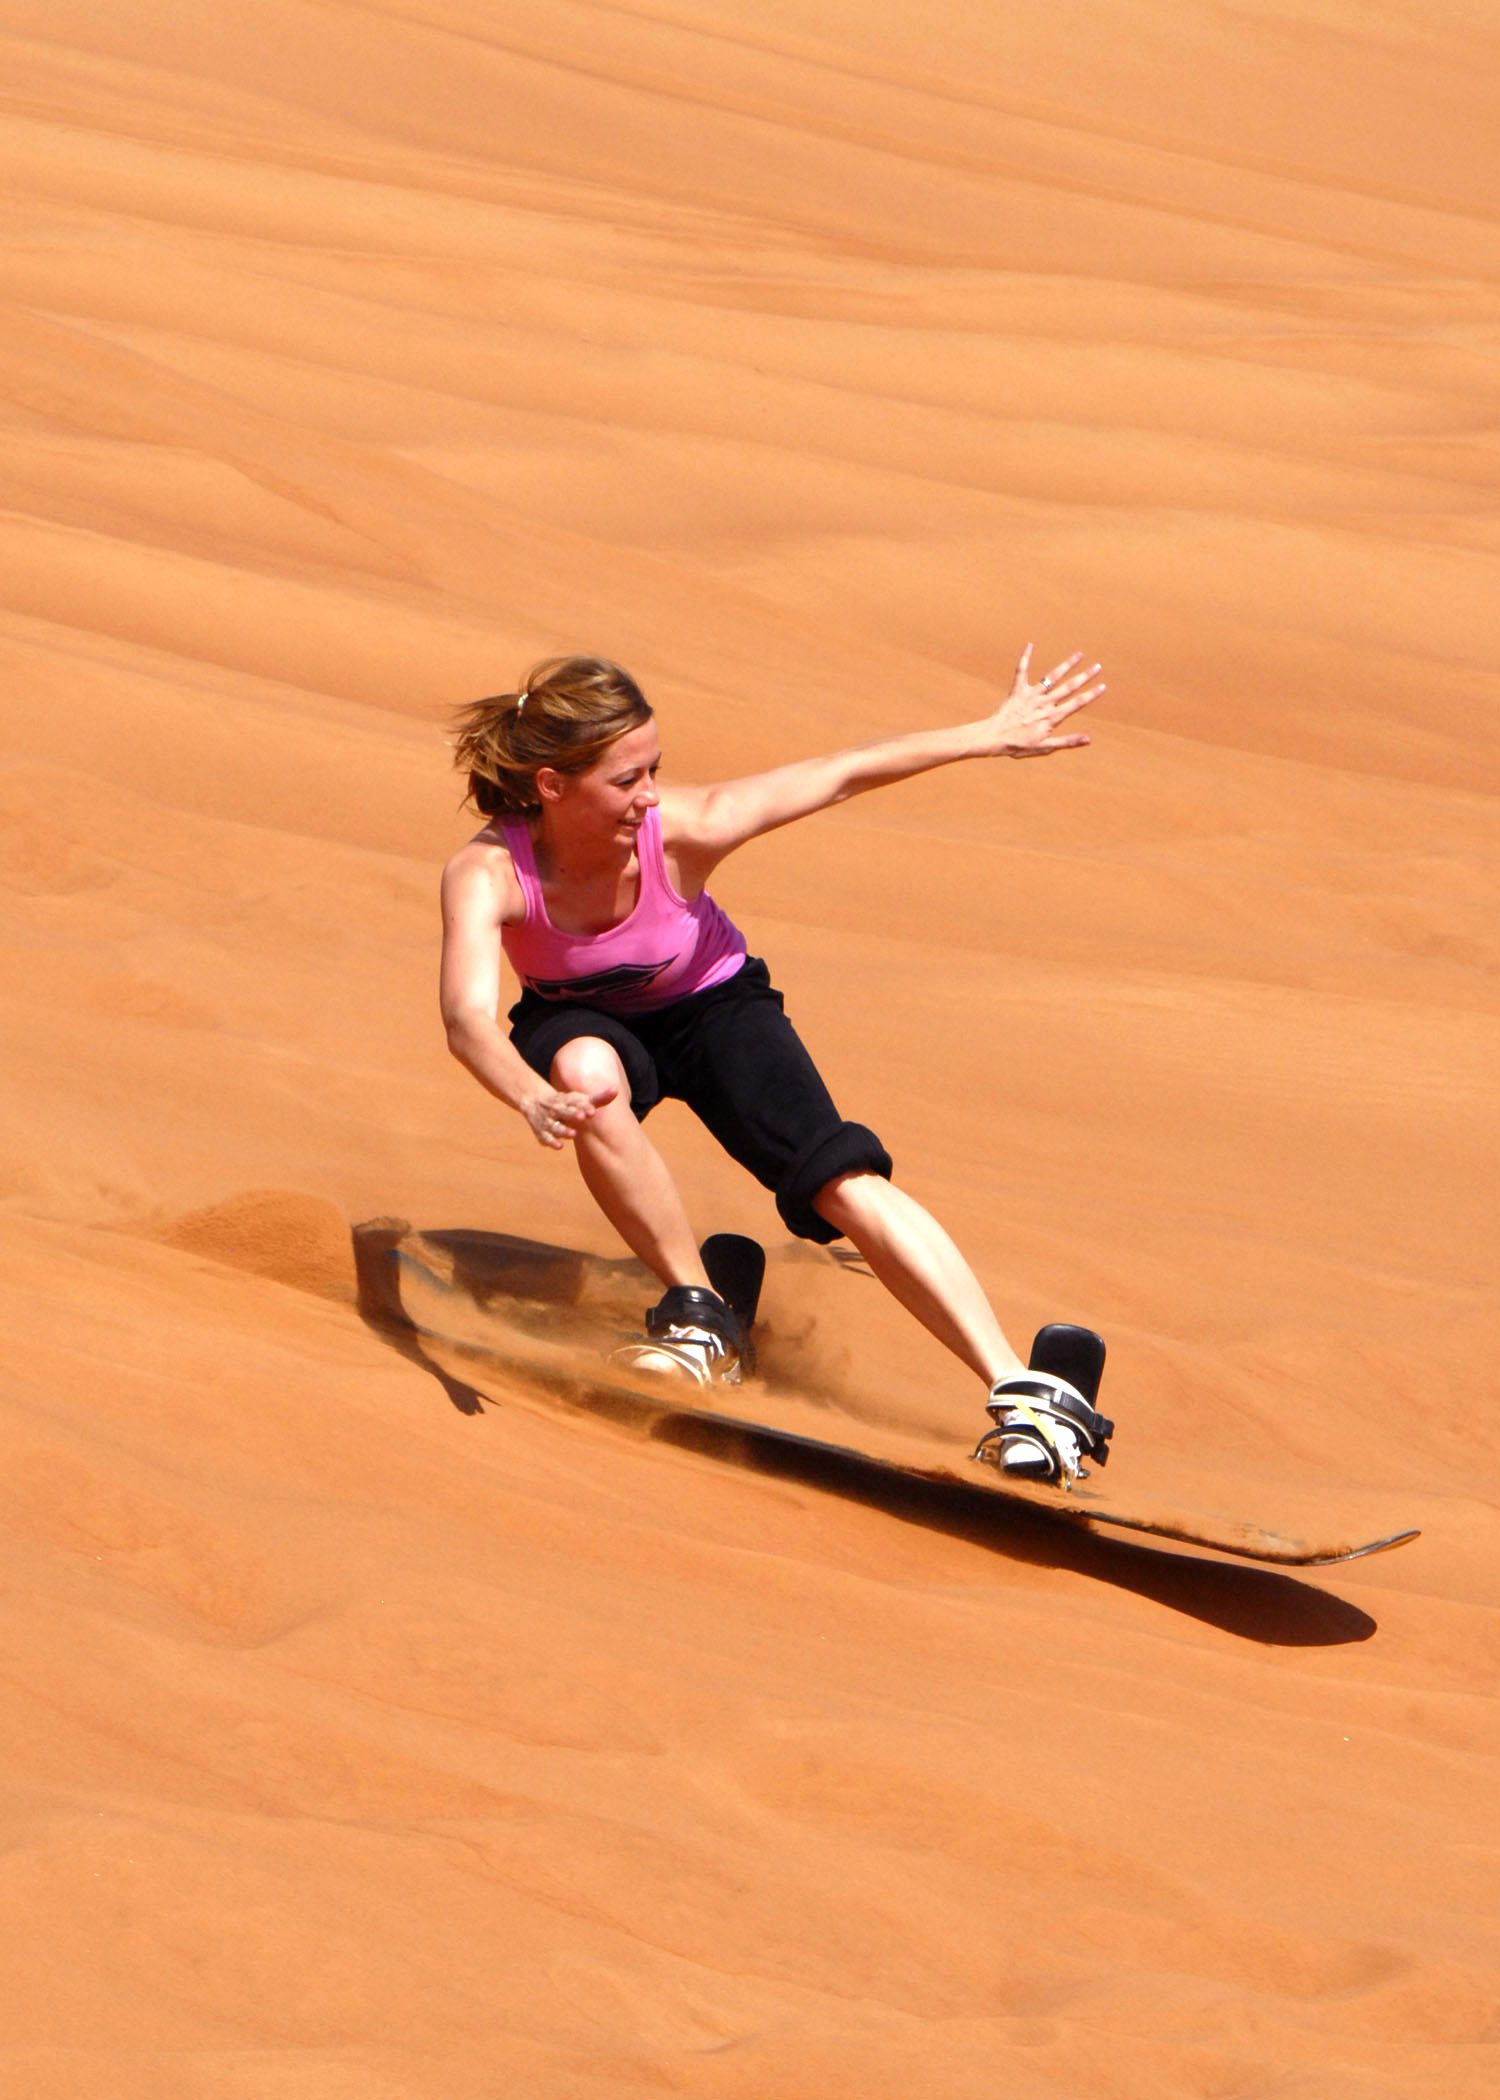 Free download high resolution image - free image free photo free stock image public domain picture -Sandboarding in Dubai